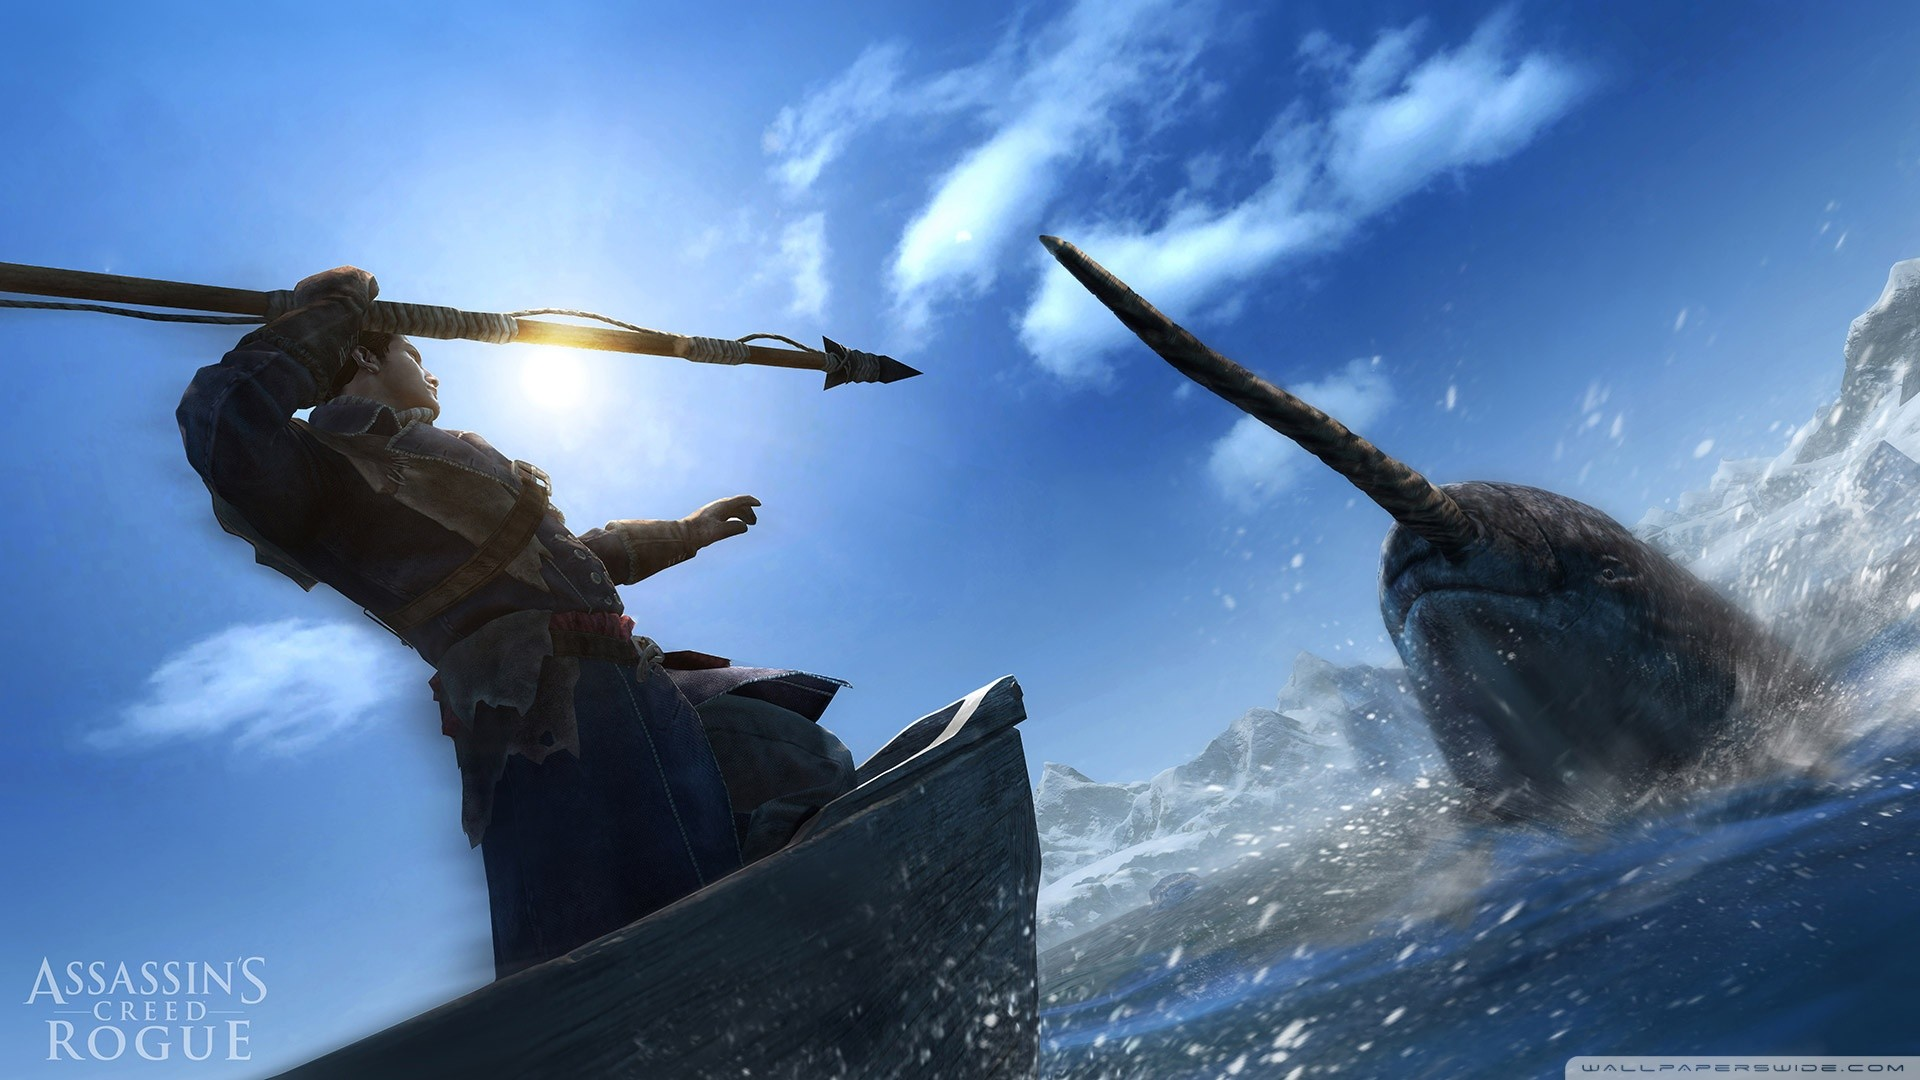 1920x1080 Assassins Creed Rogue Hunting Narwhal HD Wide Wallpaper for Widescreen